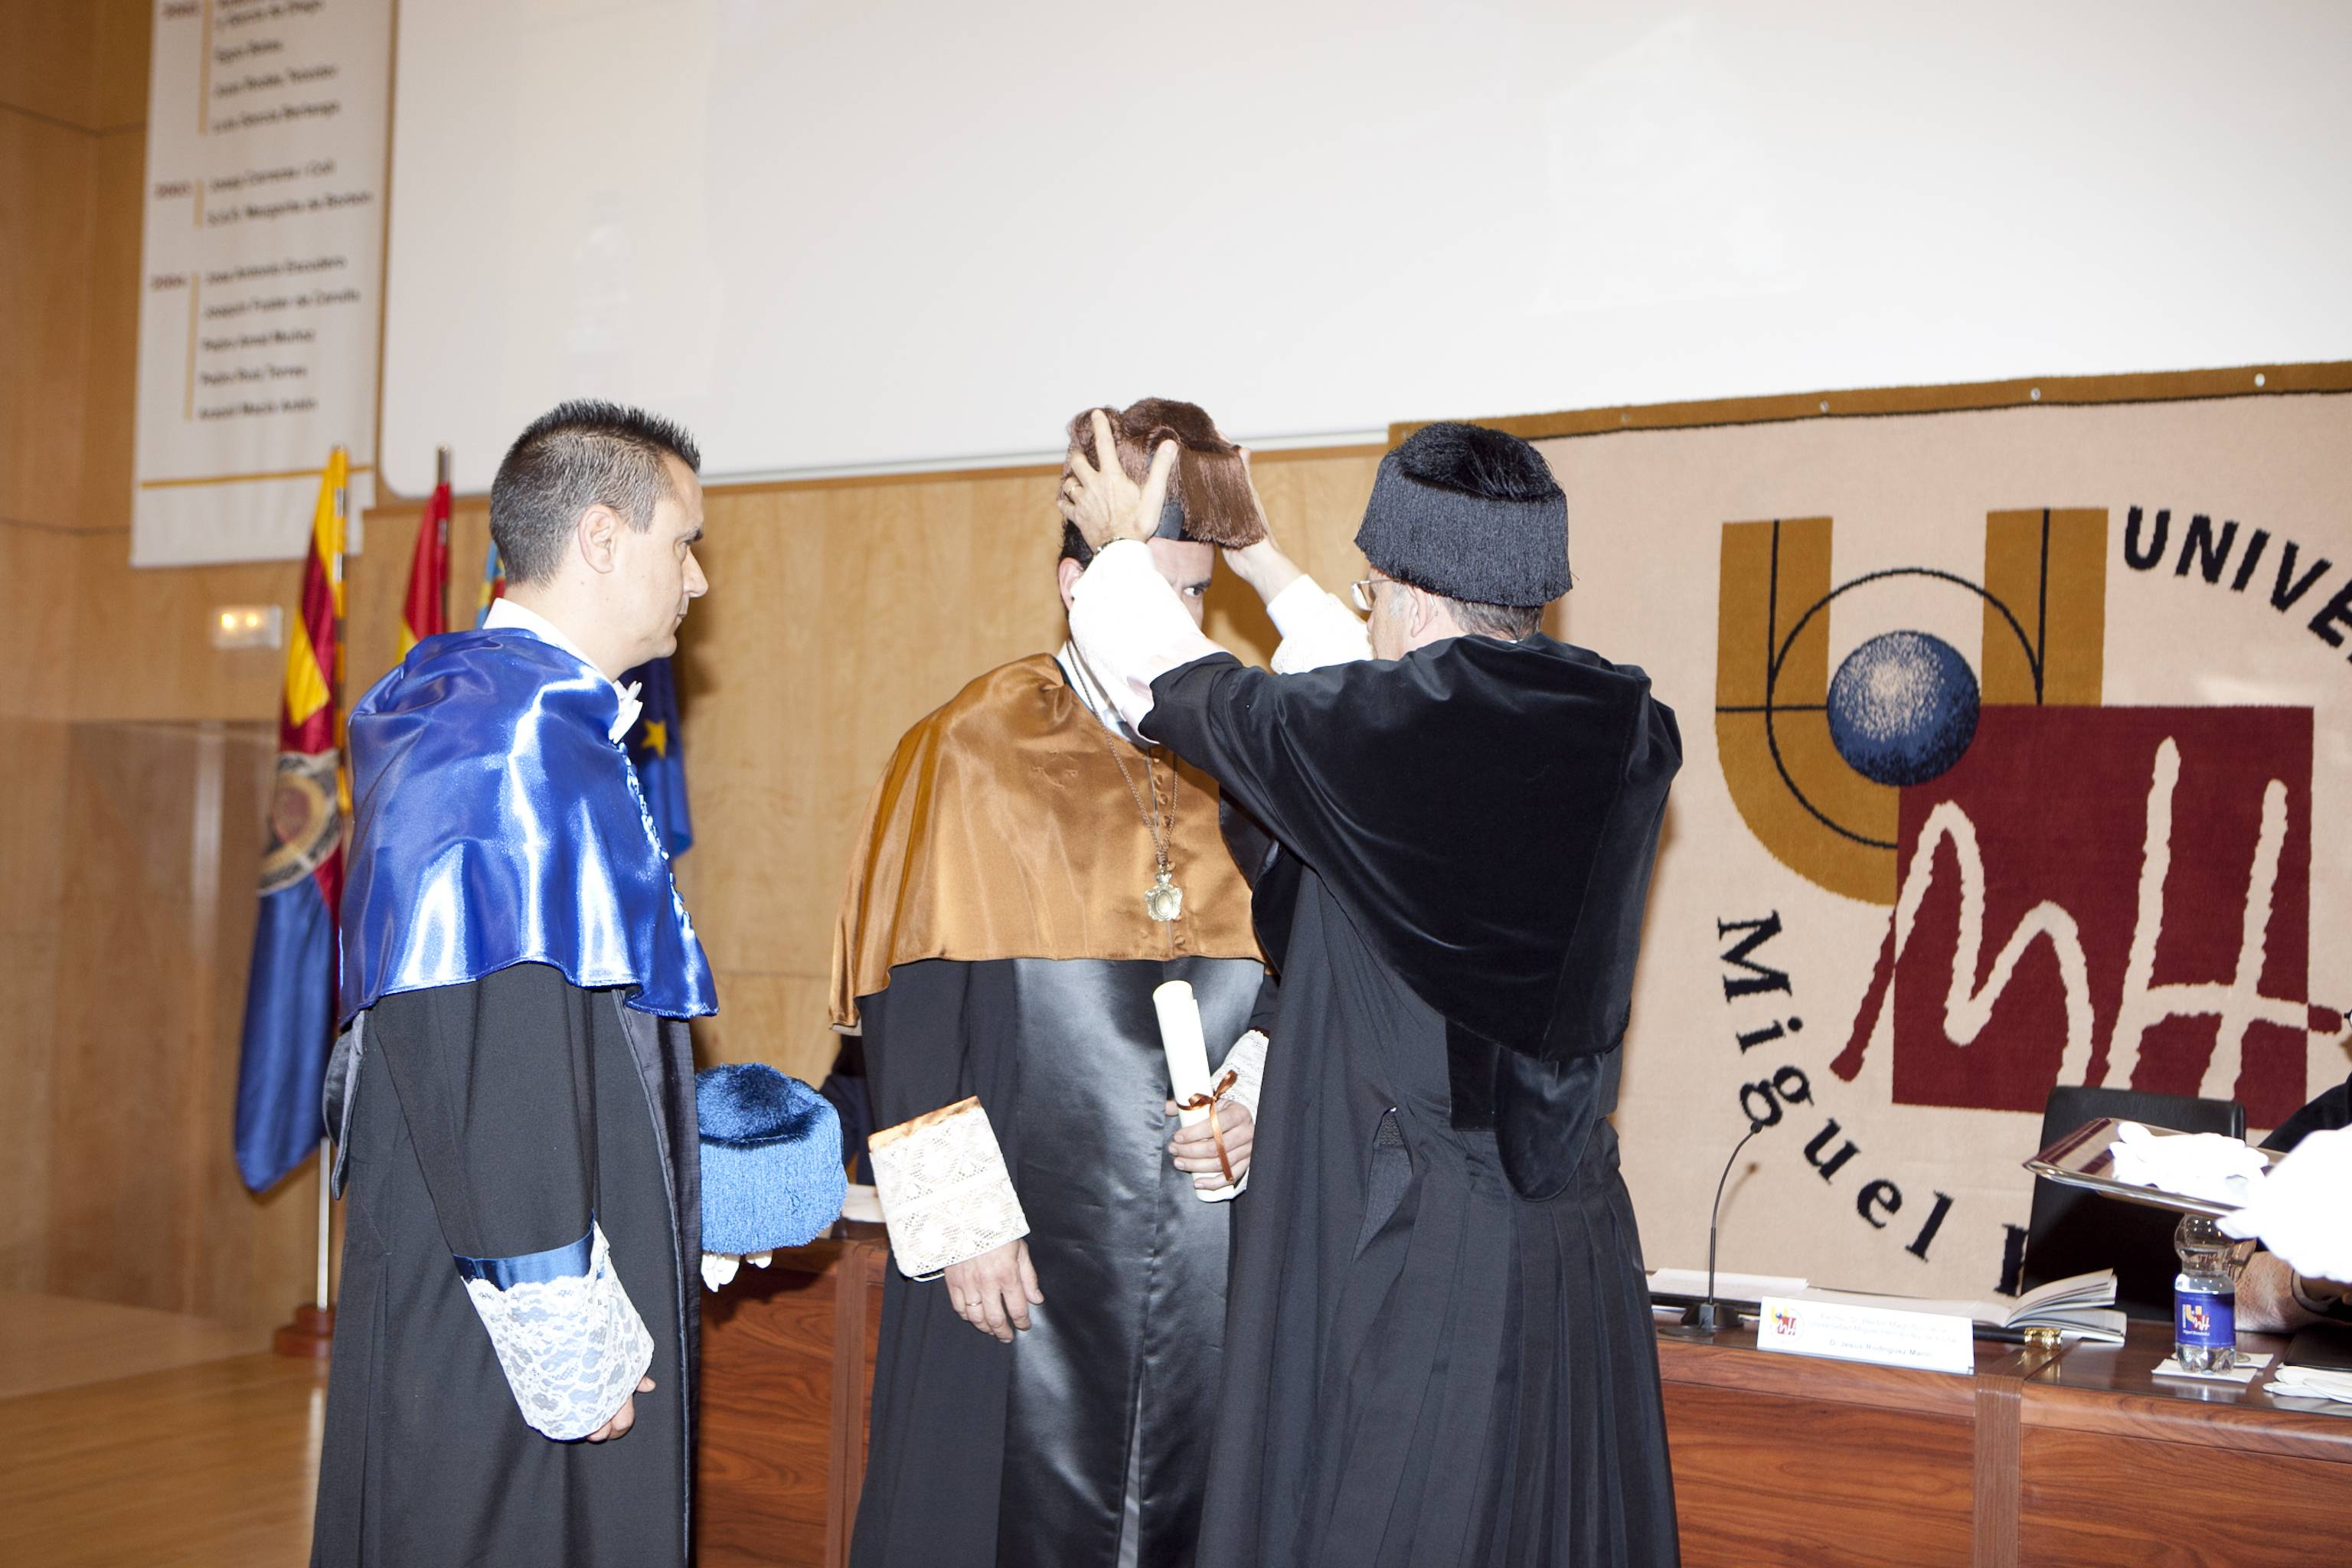 doctor-honoris-causa-luis-gamir_mg_1079.jpg